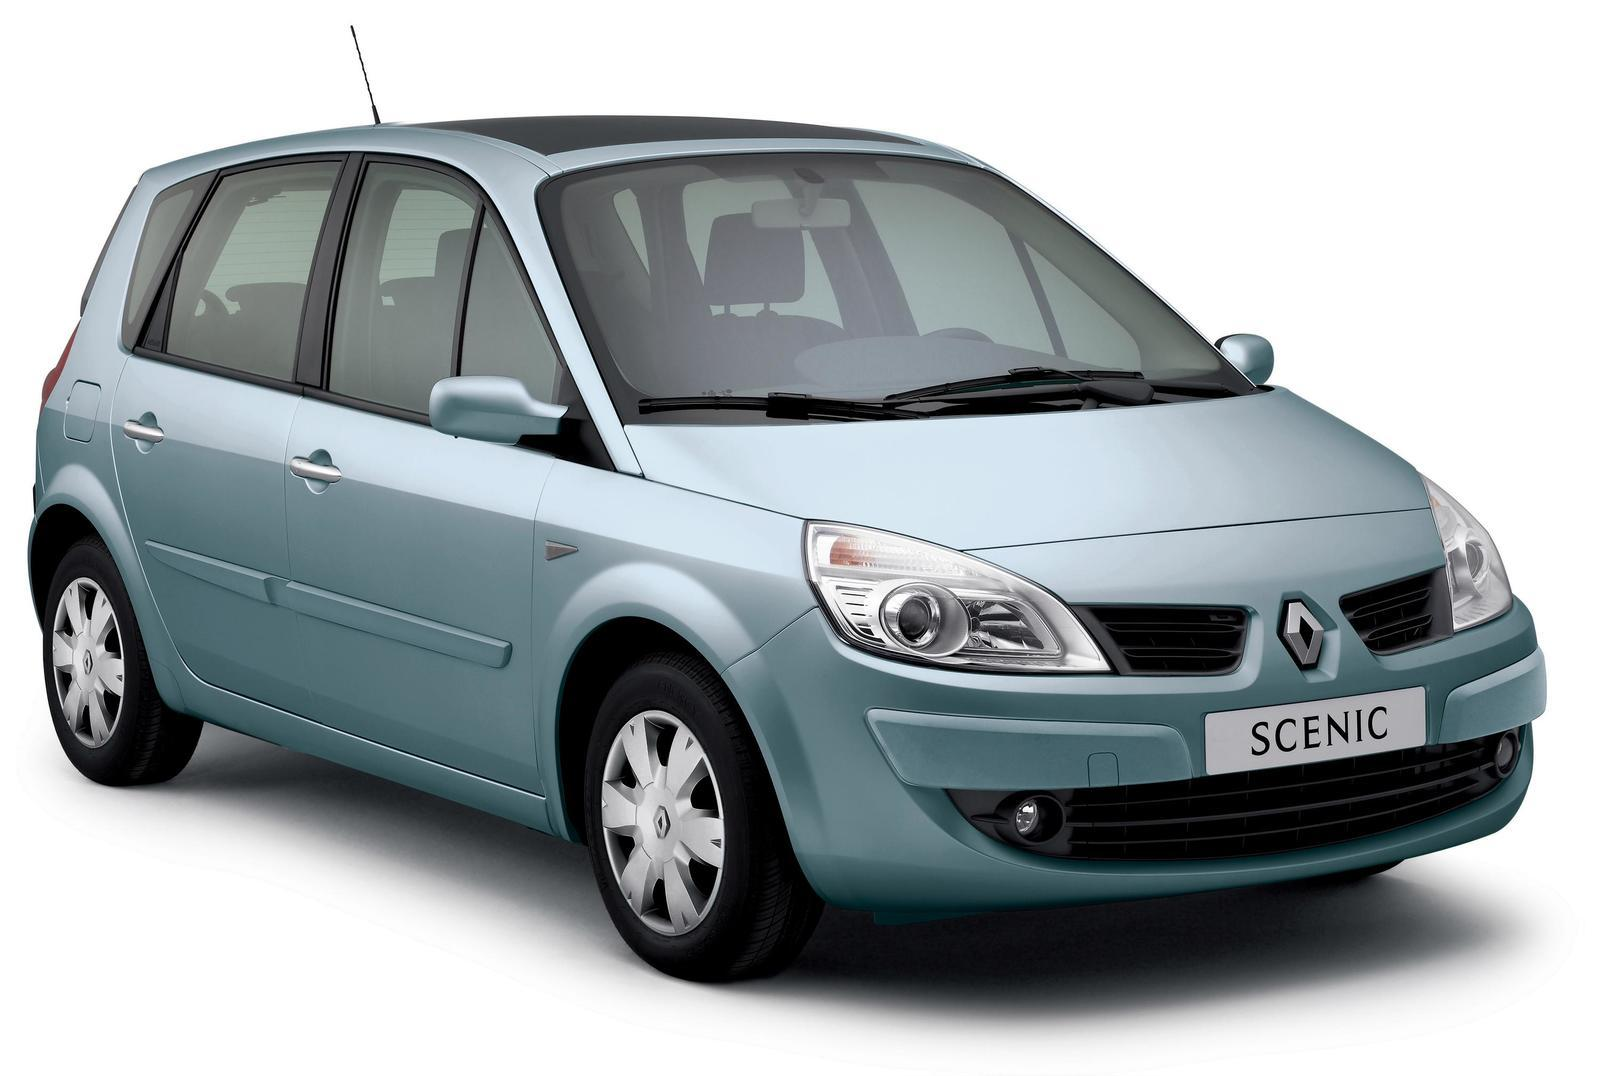 Minivans For Sale >> 2007 Renault Scénic Latitude Review - Top Speed